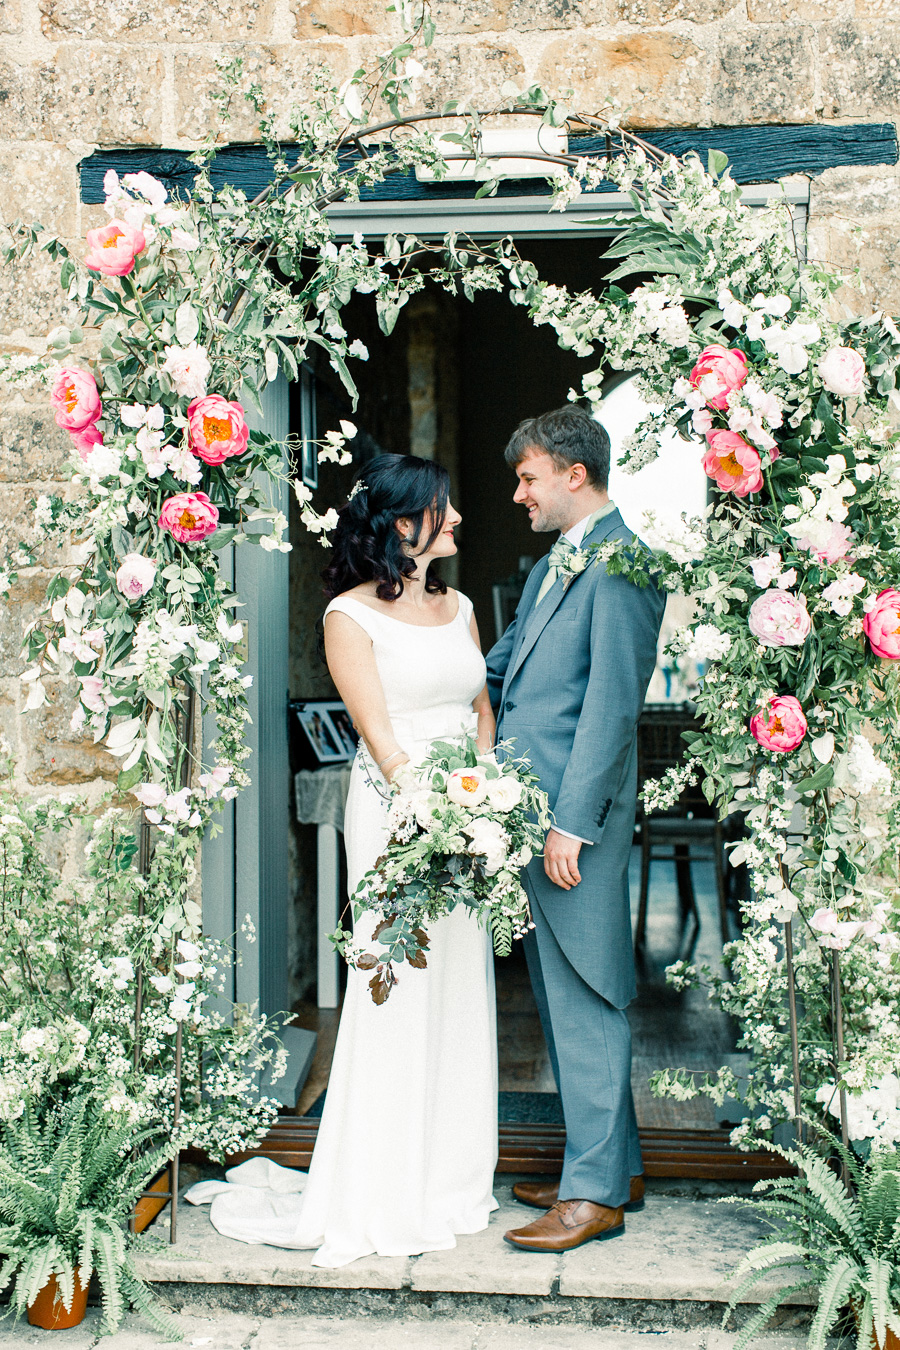 Jordans Courtyard rustic wedding styling ideas with images by Liz Baker Photography (19)